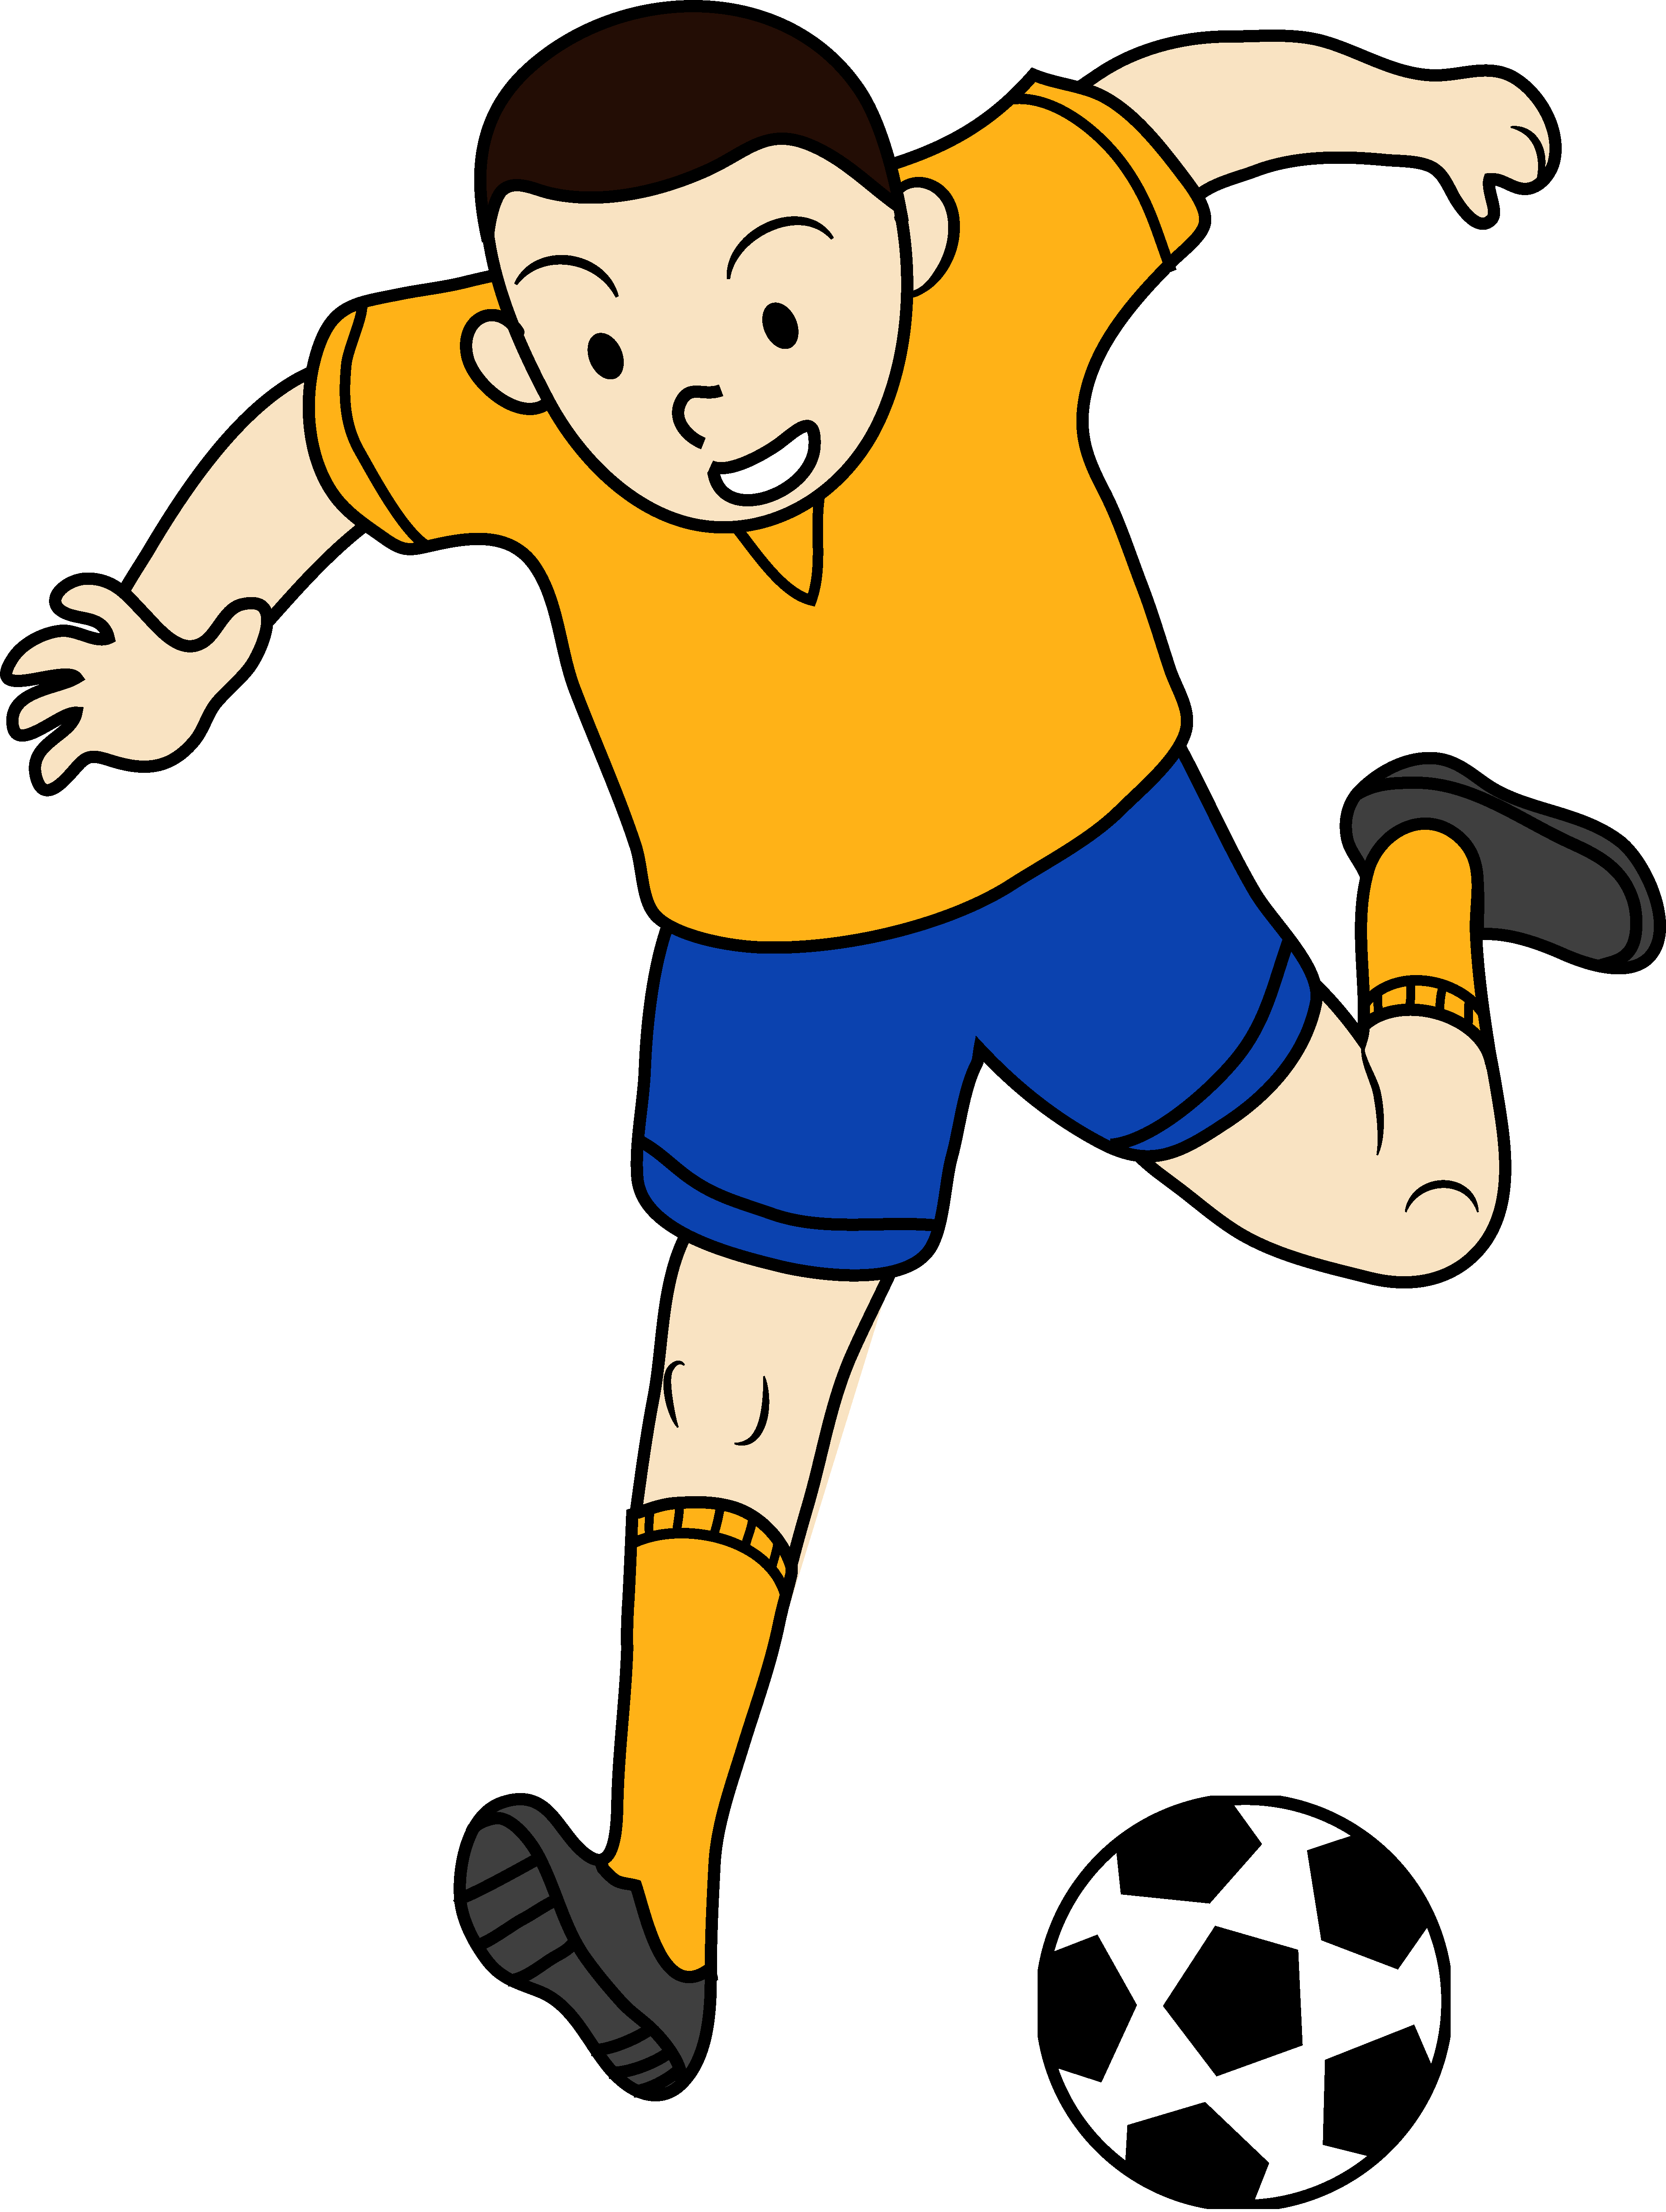 kid football player clipart